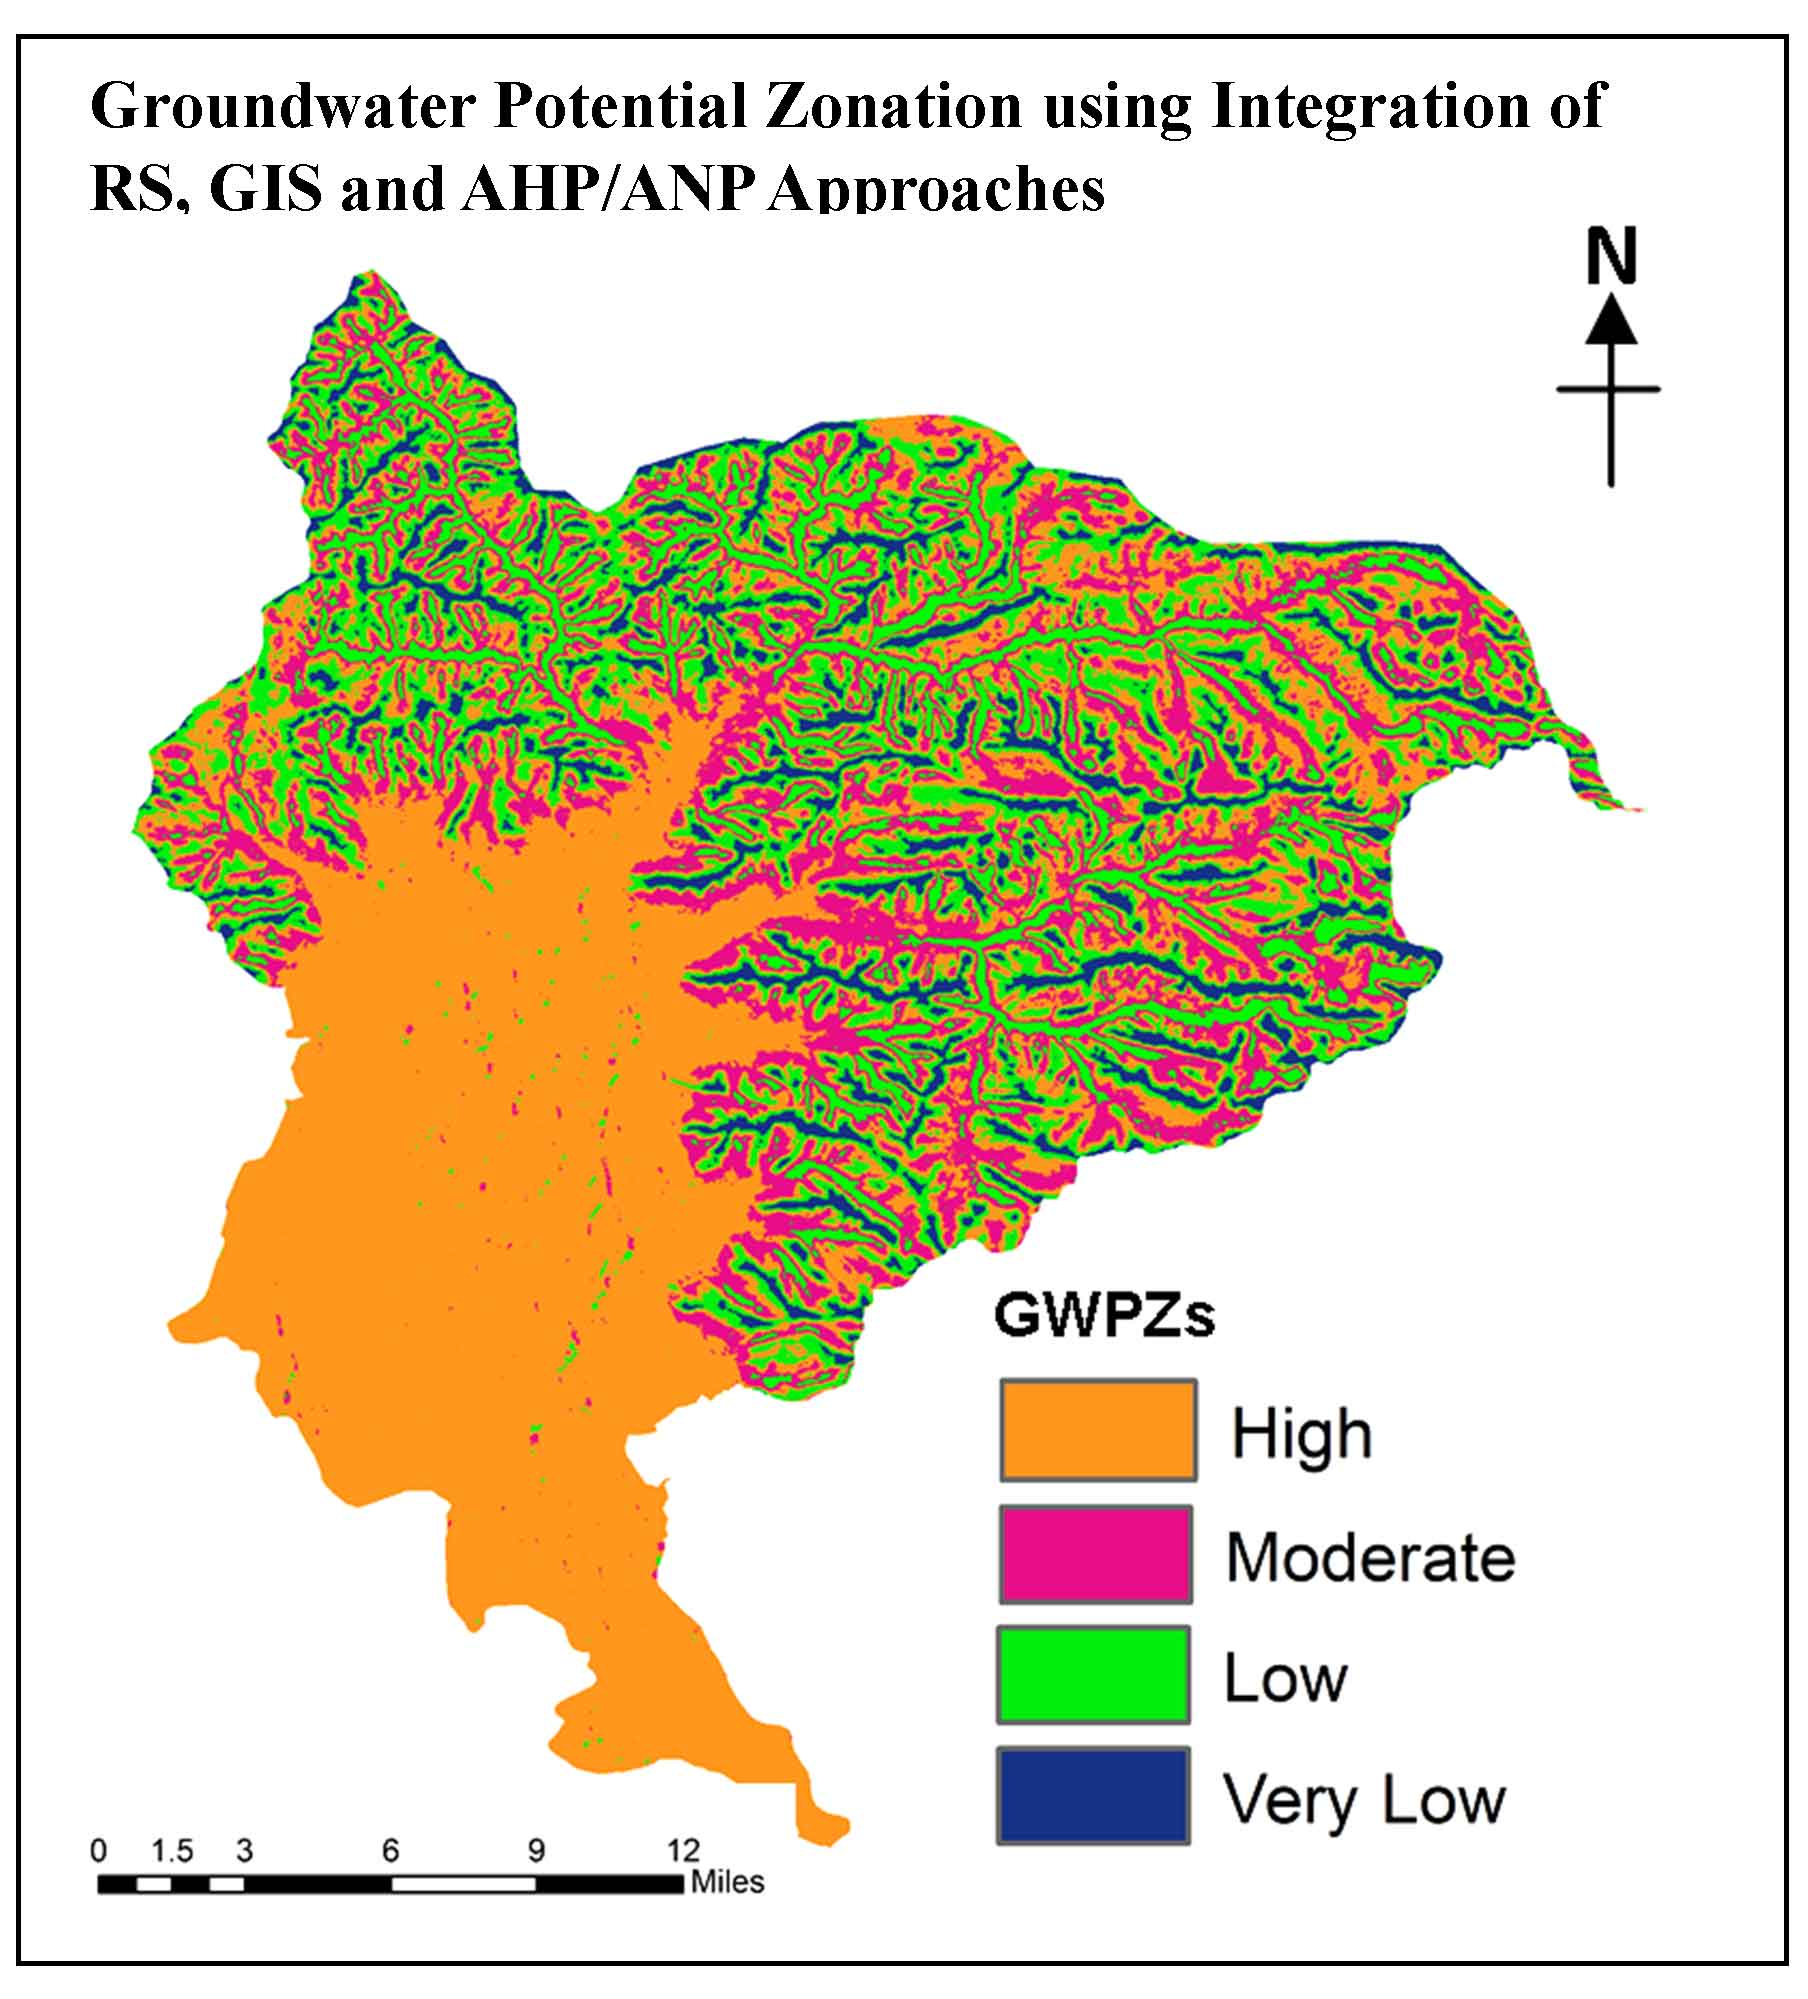 Groundwater Potential Zonation using Integration of Remote Sensing and AHP/ANP Approach in North Kashmir, Western Himalaya, India